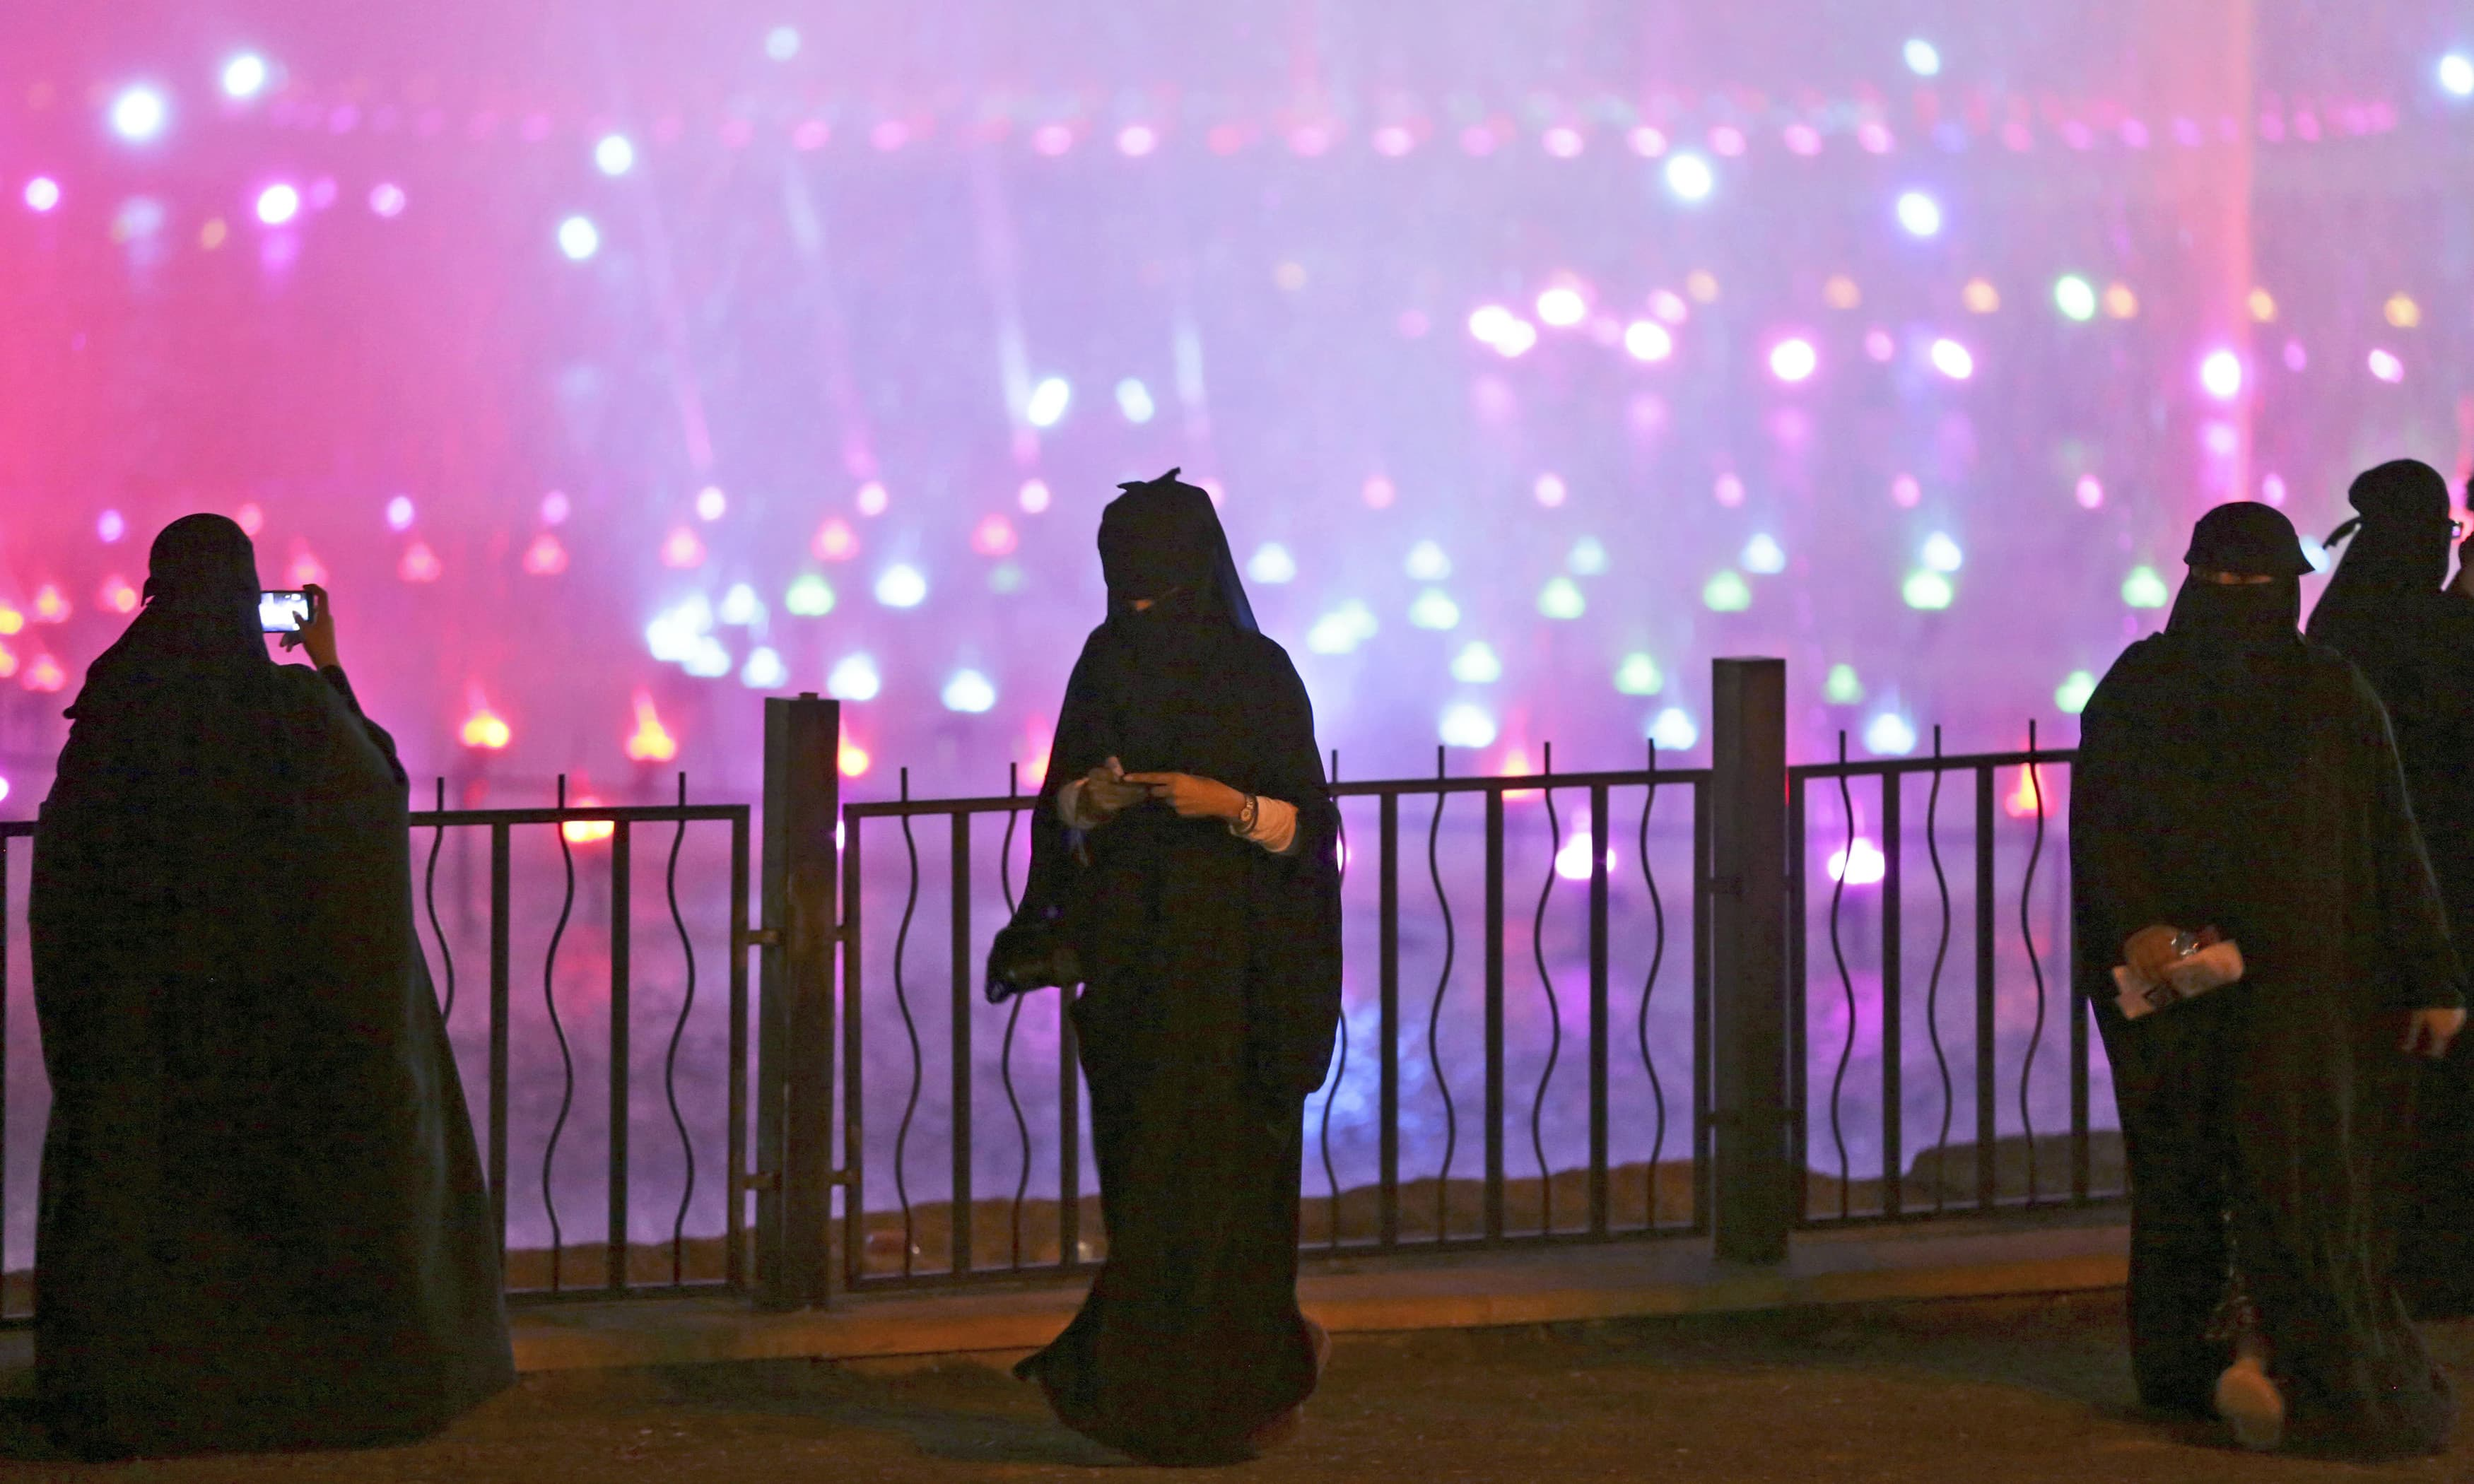 A Saudi woman takes photographs during celebrations to mark the Earth Hour in Riyadh. —AP/File